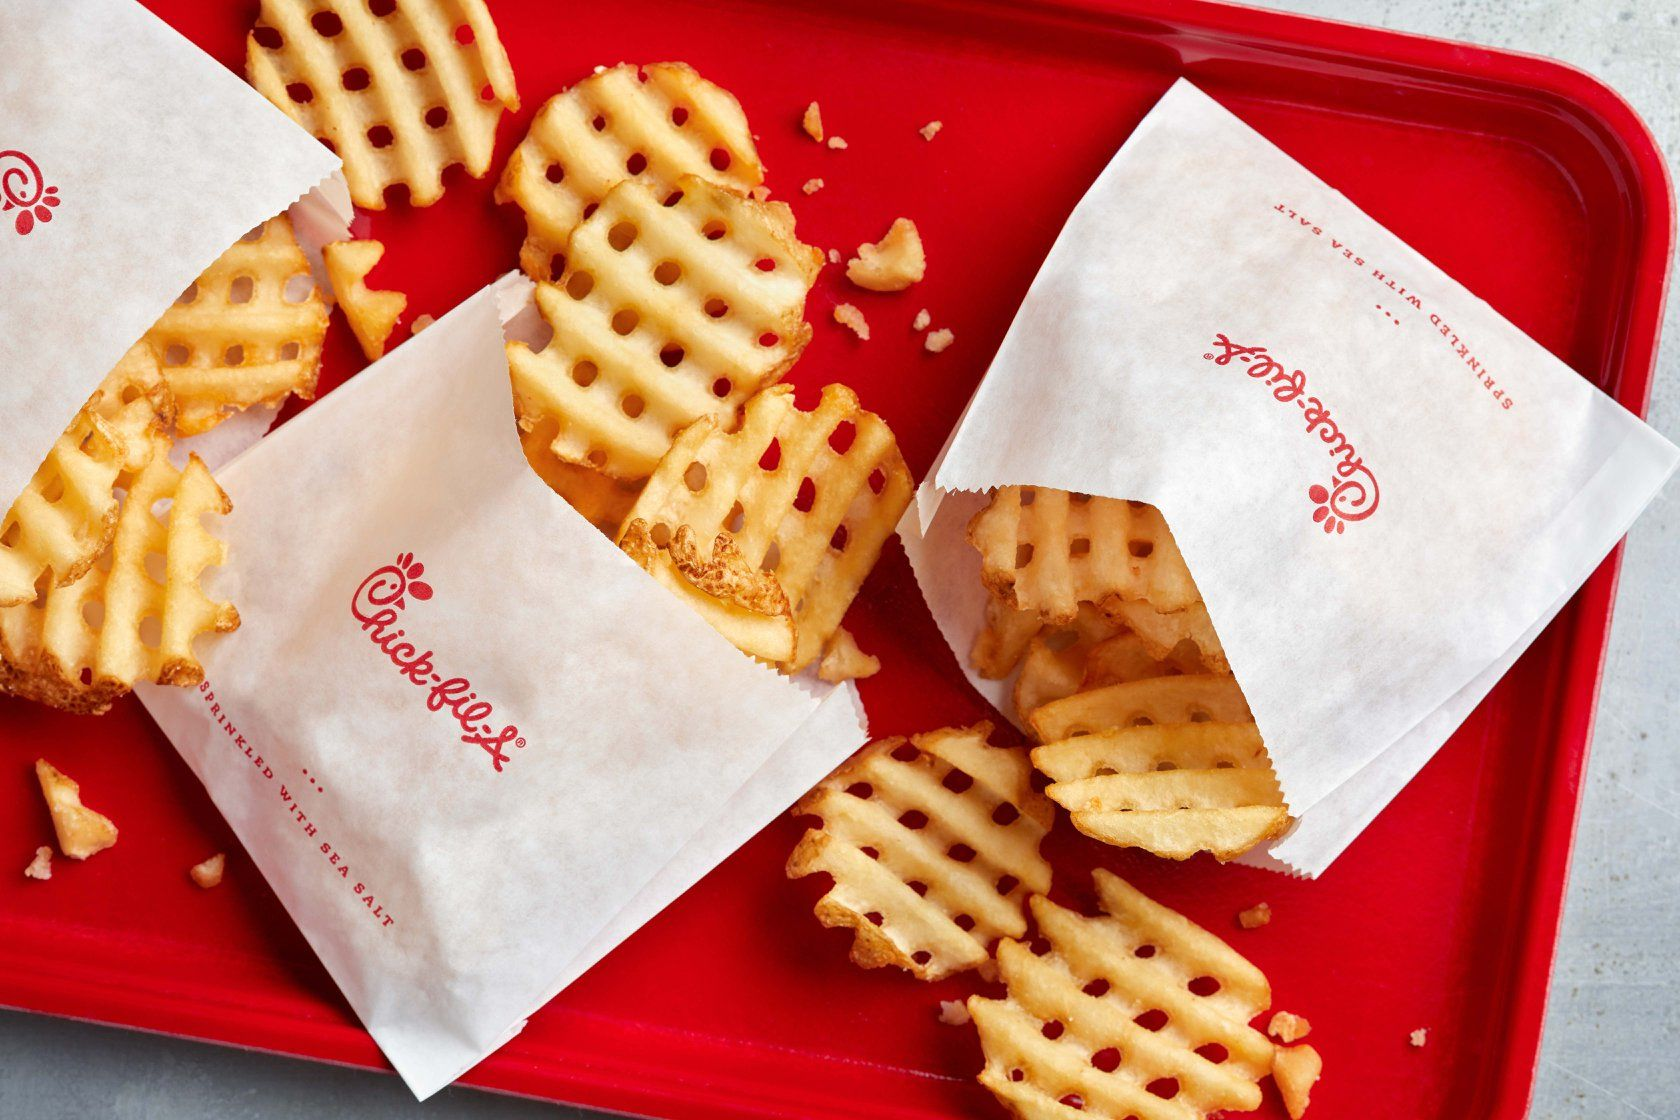 This Elusive Chick-fil-A Sauce is a Game-Changer for Waffle Fry Fans